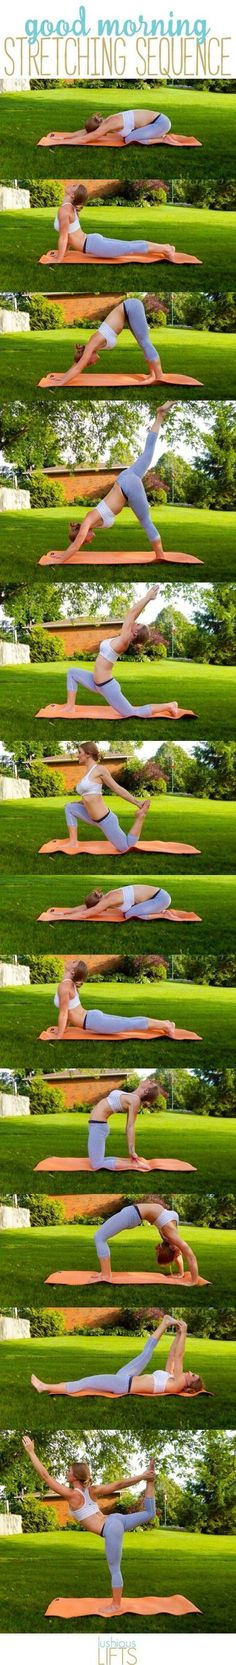 Yoga Workouts to Try at Home Today - Good Morning Stretching Sequence- Amazing Work Outs and Motivation for Losing Weight and To Get in Shape - Up your Fitness, Health and Life Game with These Awesome Yoga Exercises You Can Do At Home - Healthy Diet Ideas